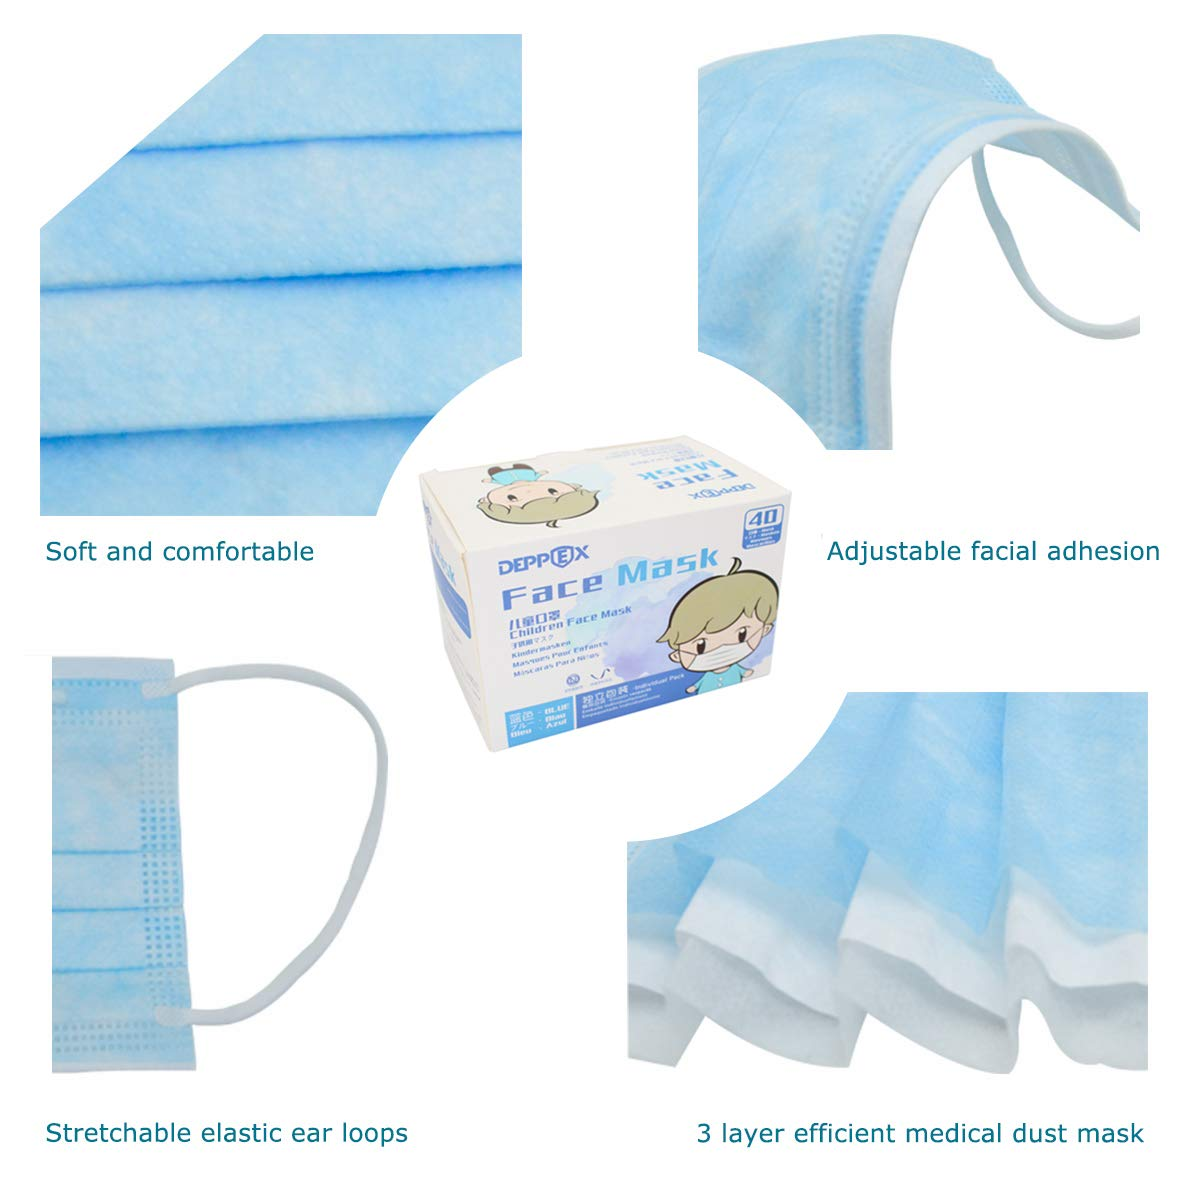 deppex disposable face mask